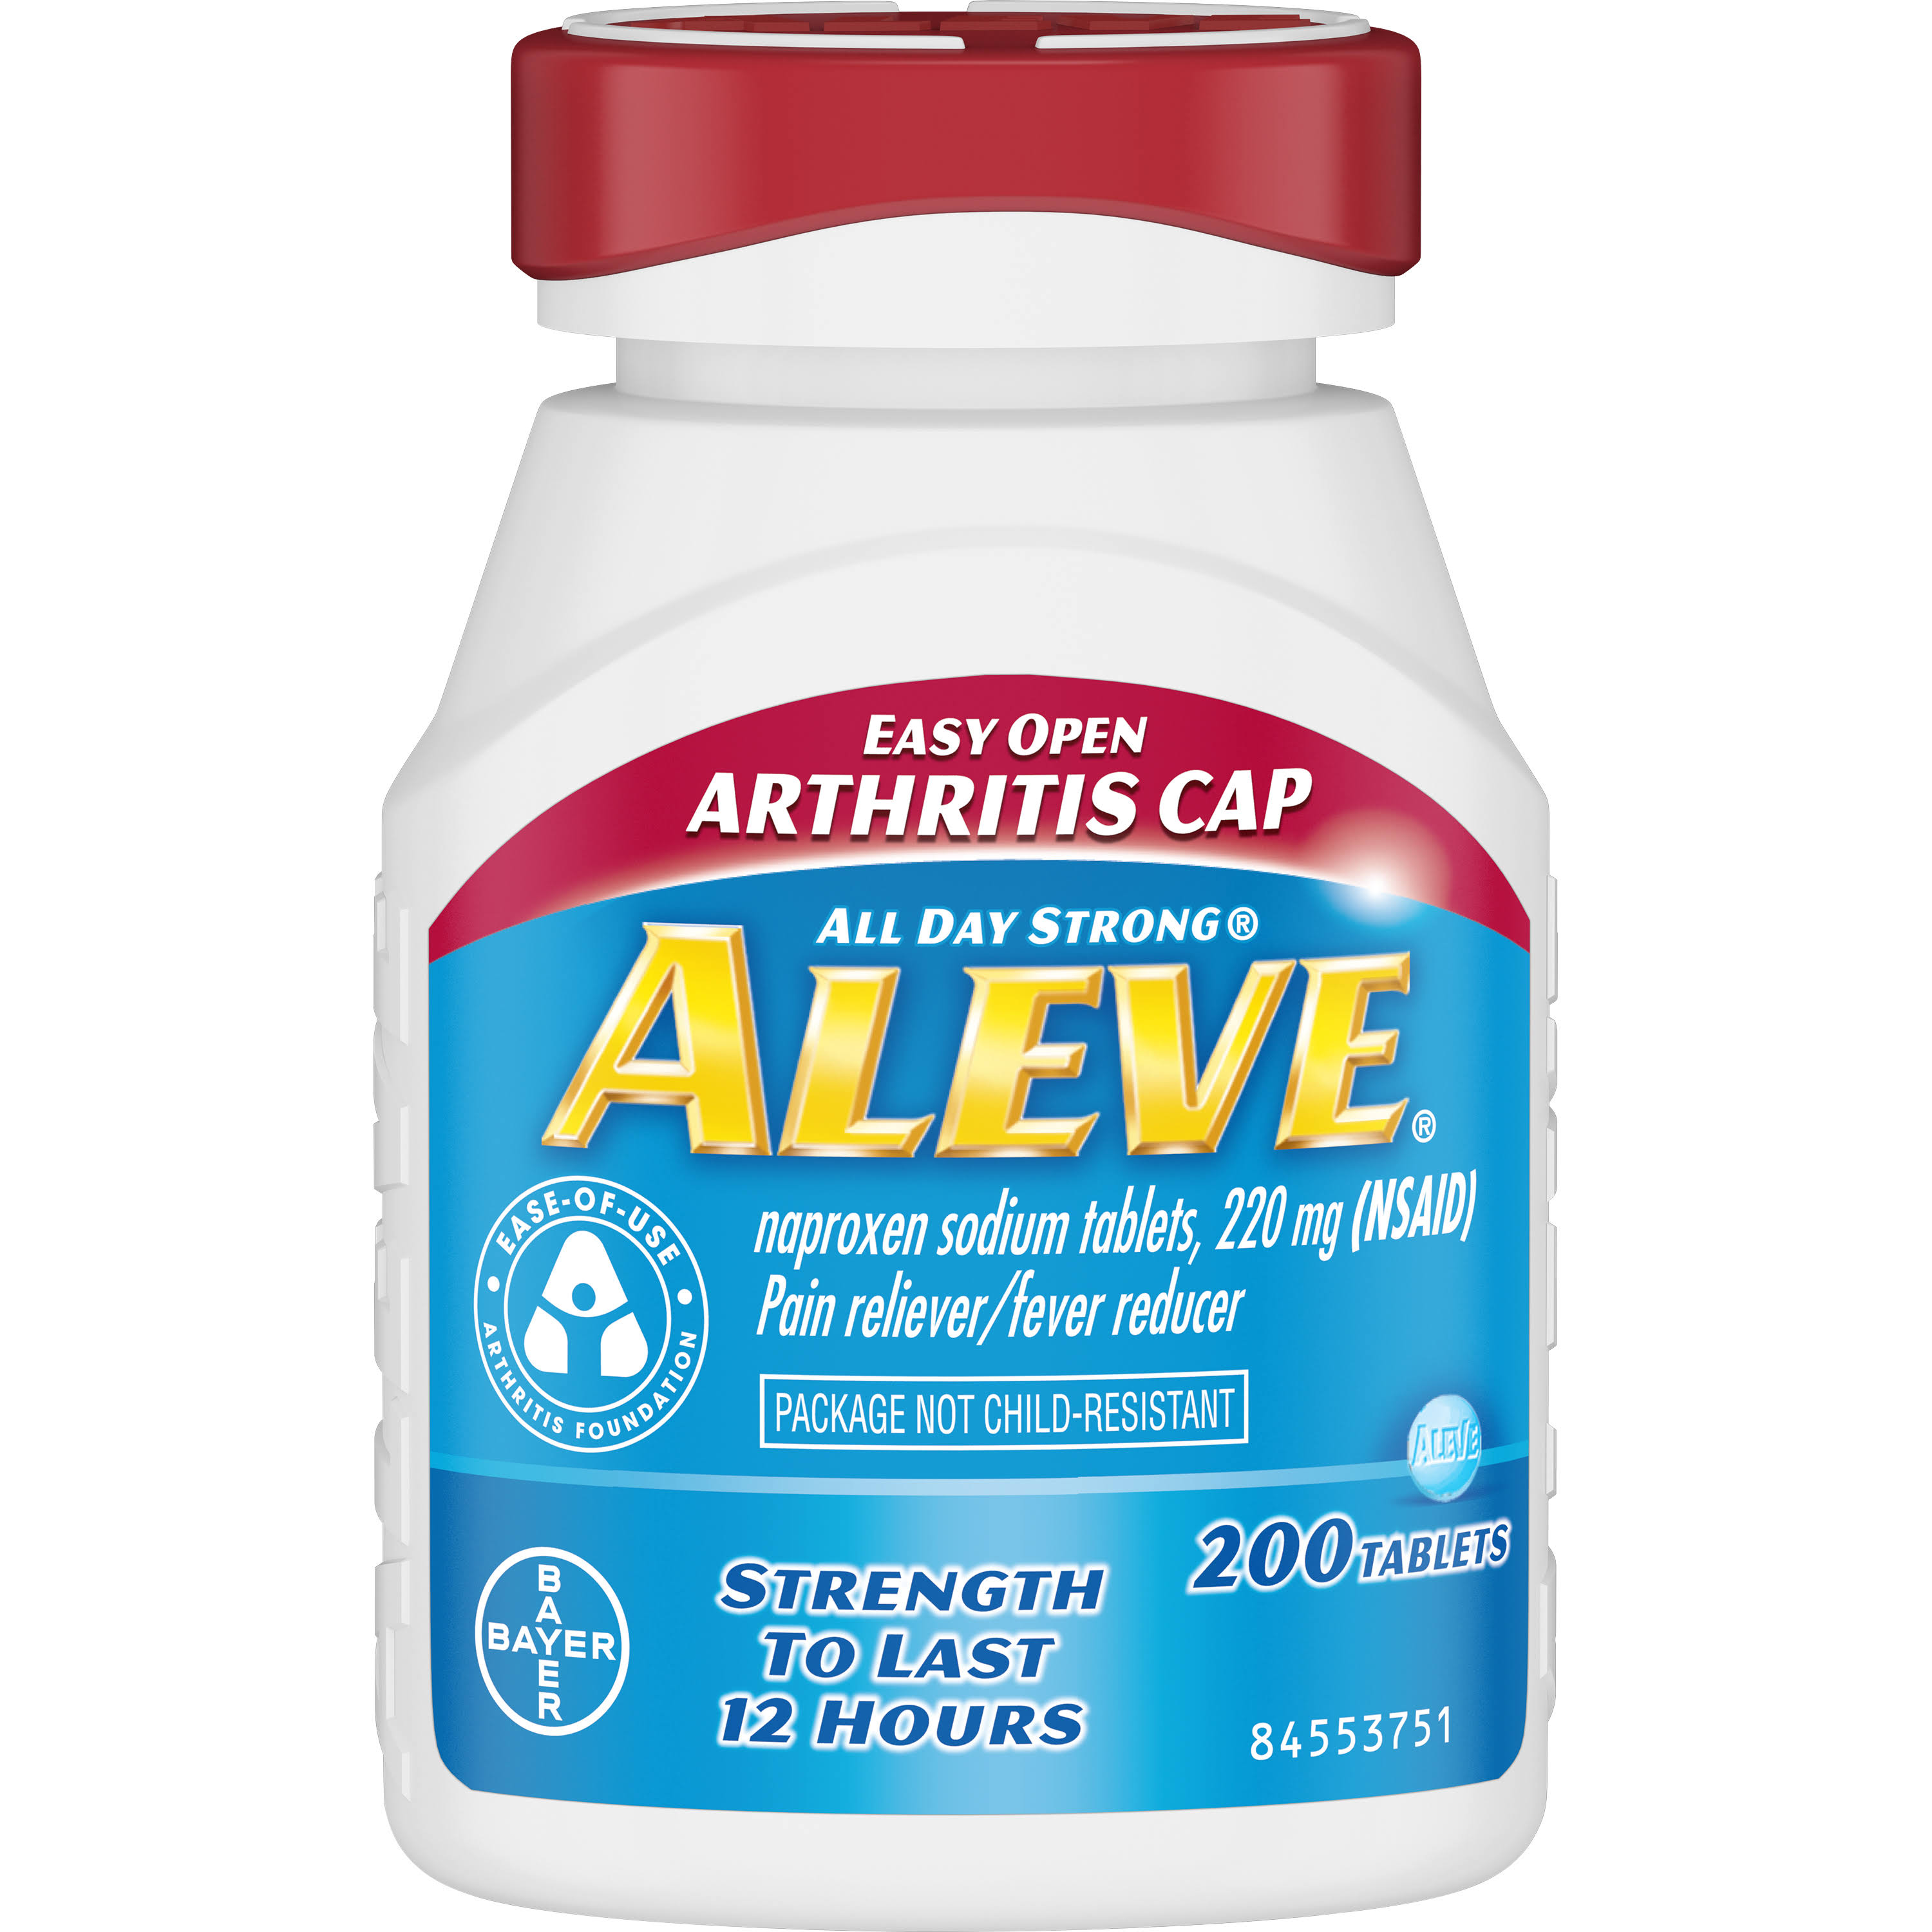 Aleve Tablets with Easy Open Arthritis Pain Reliever - 200ct